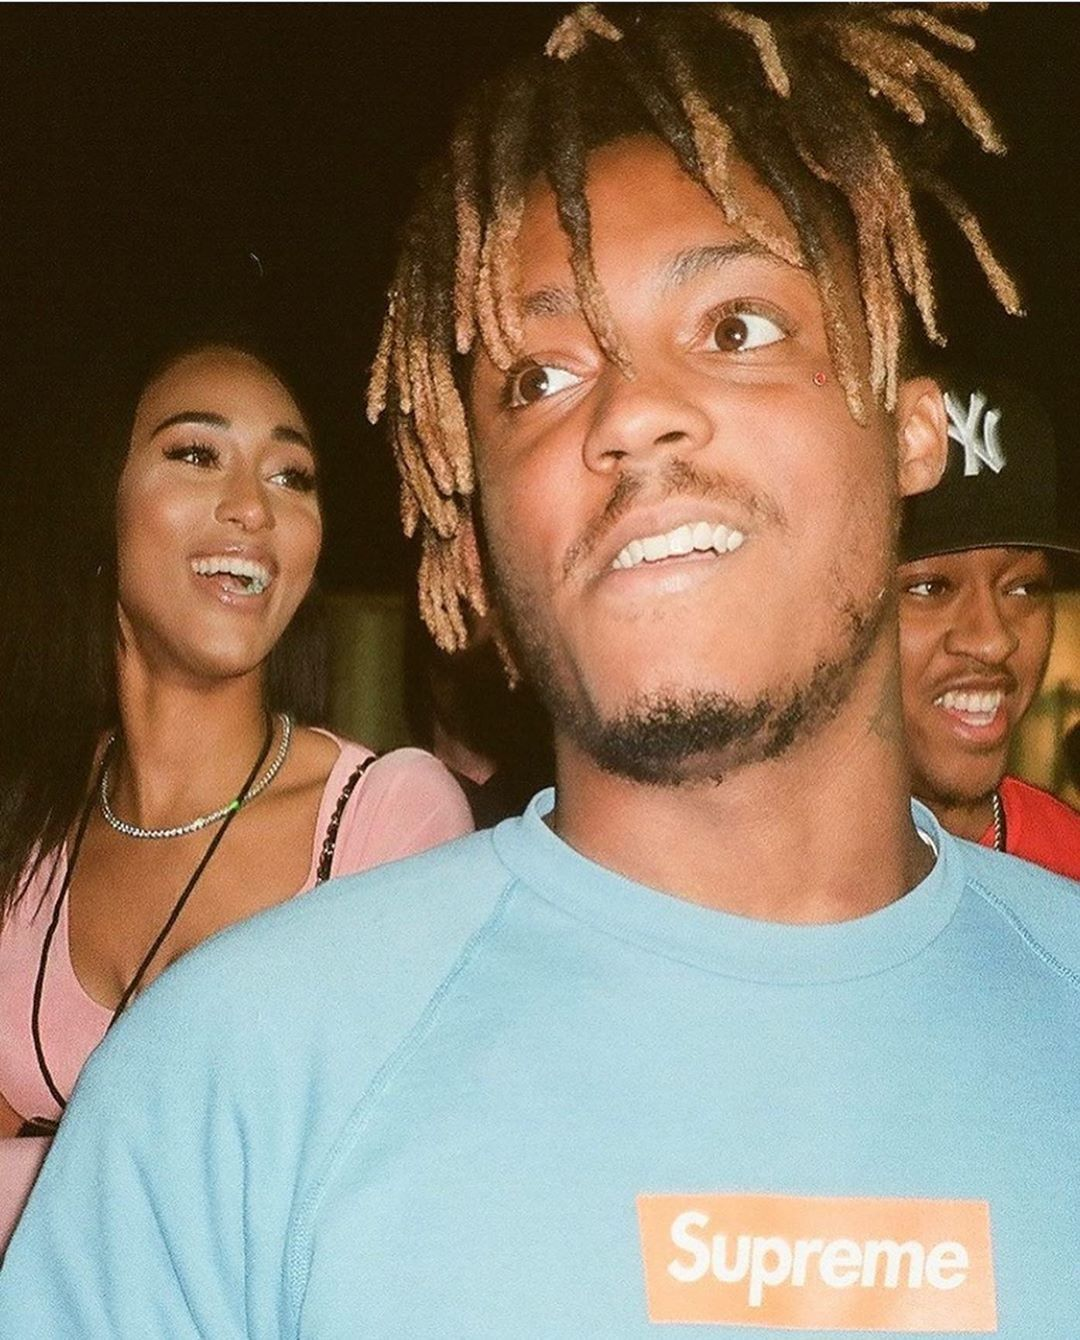 """Juice WRLD 9 9 9 on Instagram: """"I reek of good vibes, smokin' on reefer, I'm high (drop the song name if you can�)"""""""